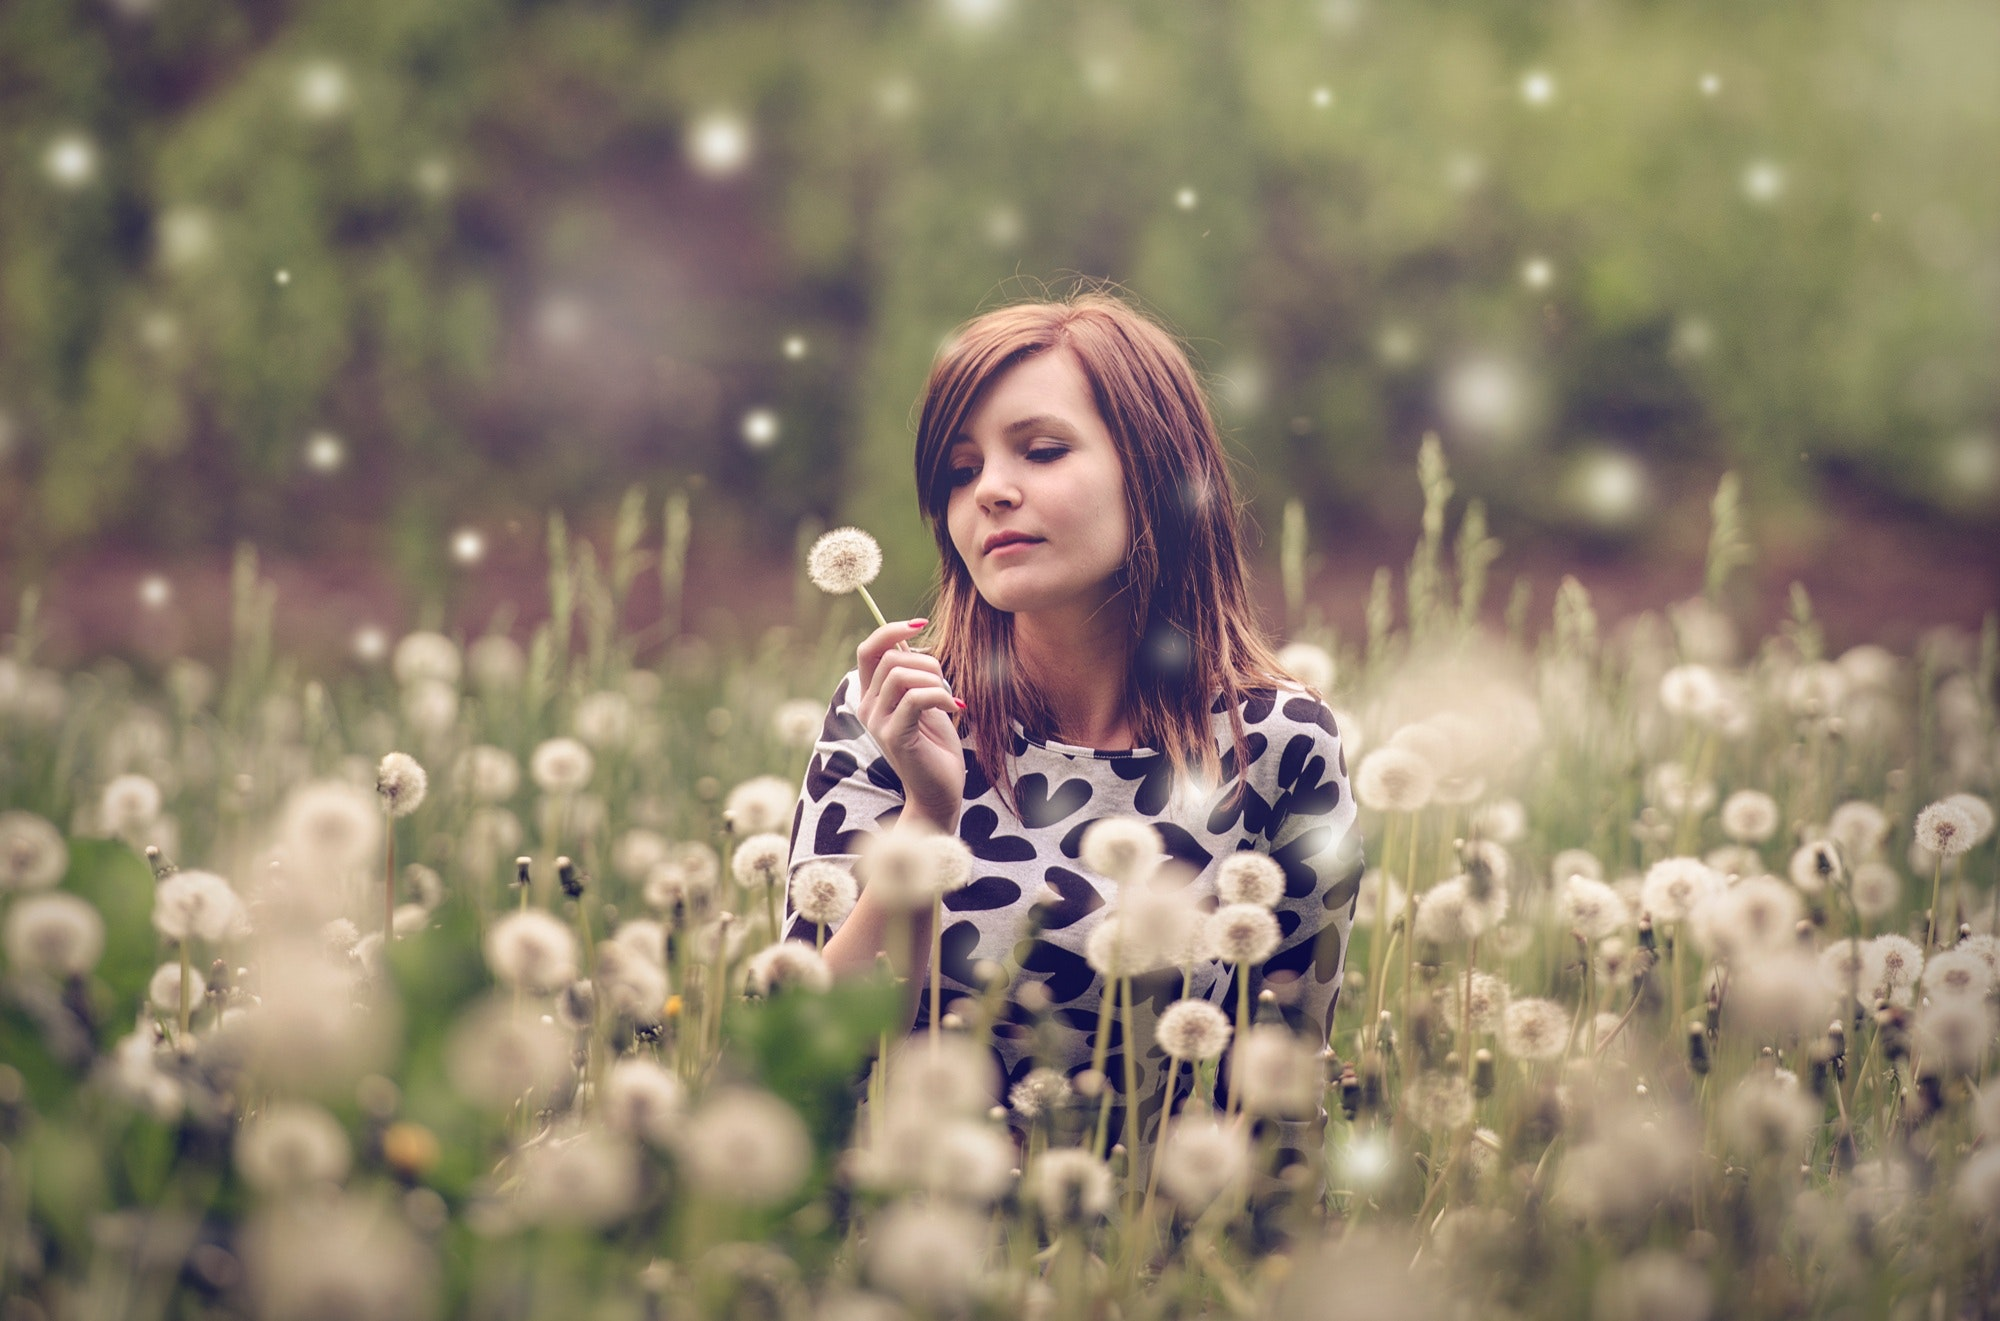 Woman Sitting in a Field of Flowers, Beautiful, Bloom, Blossom, Dandelions, HQ Photo